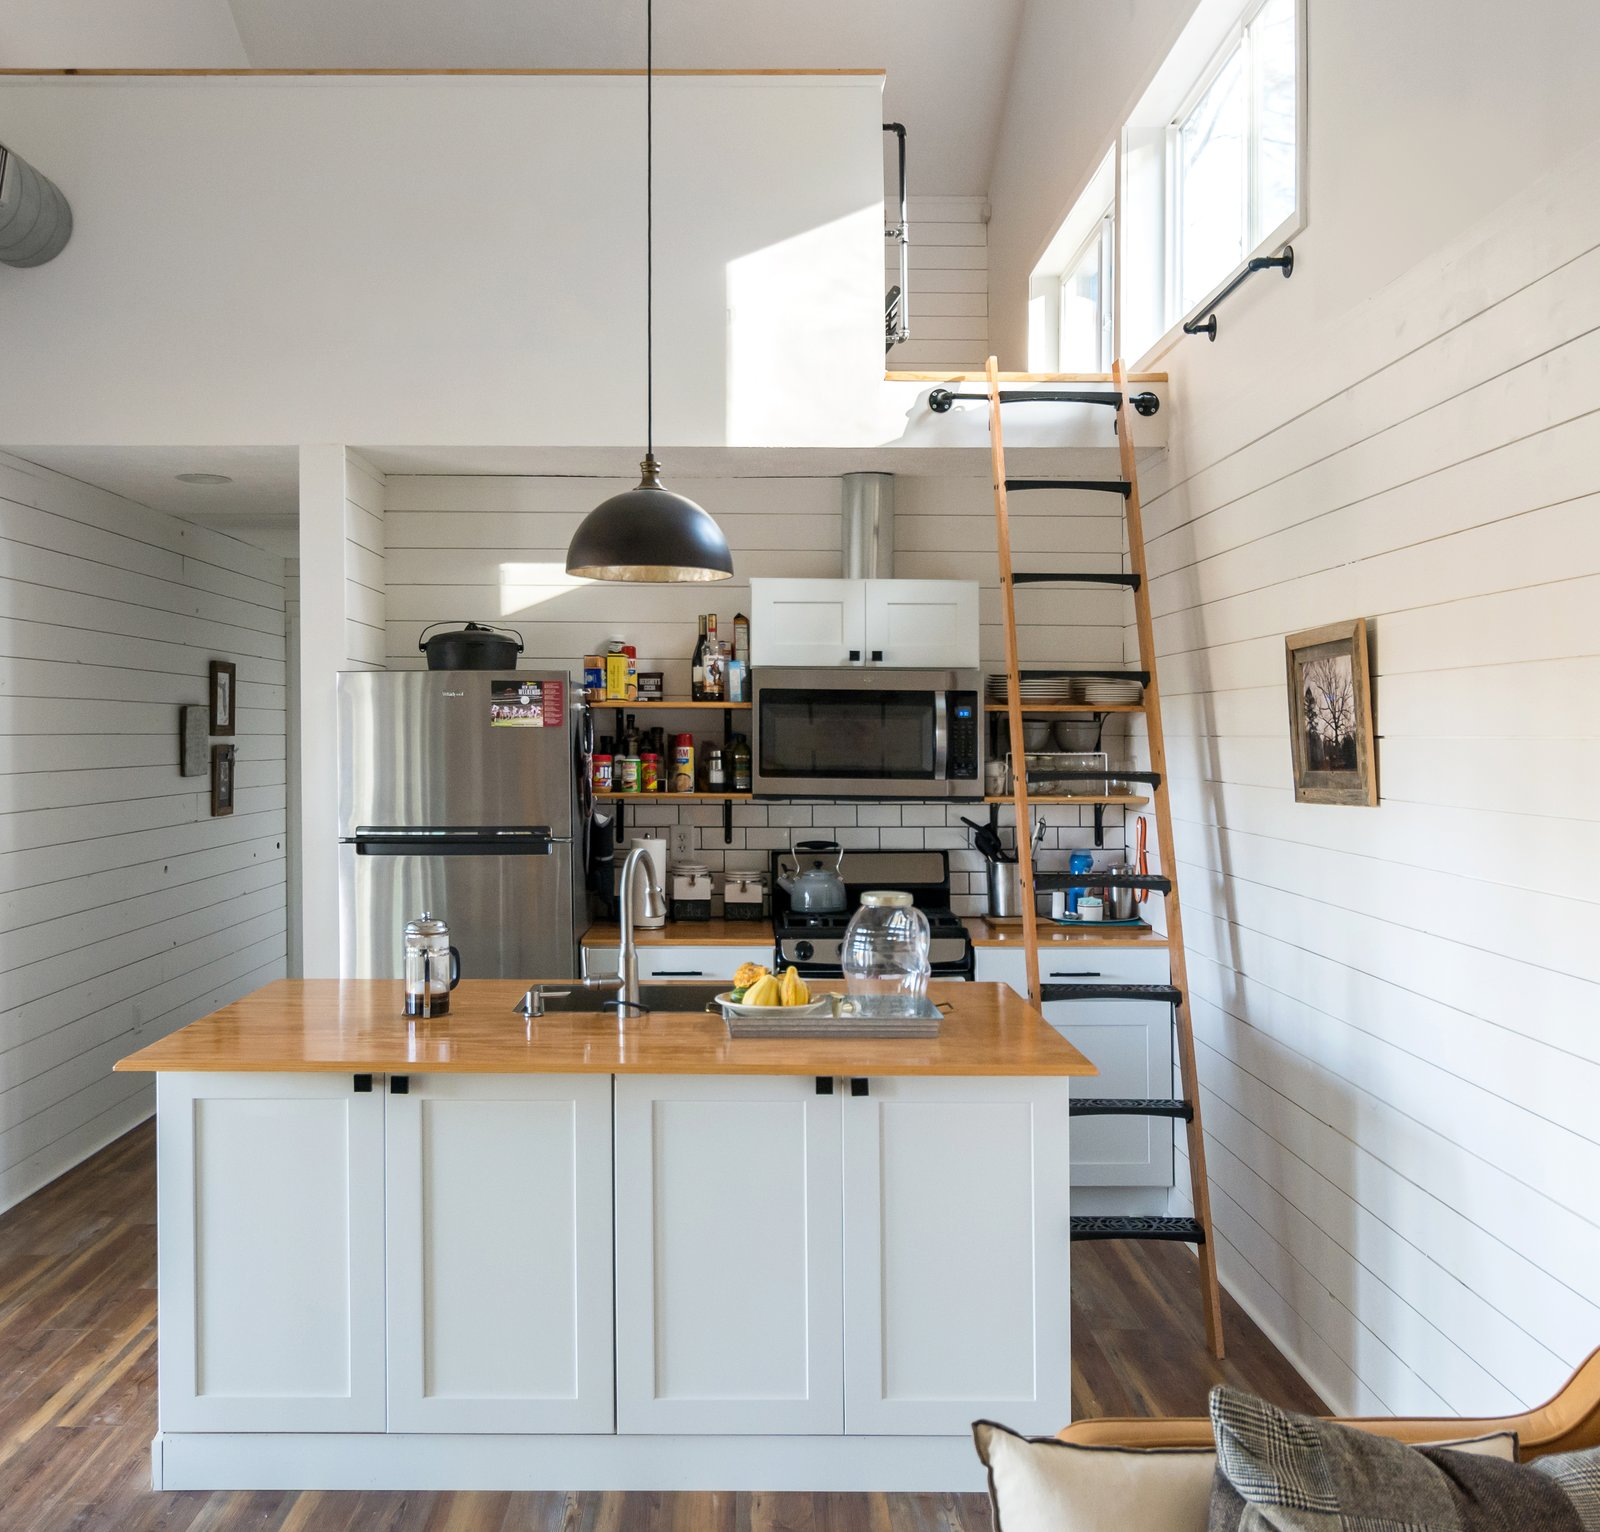 Nash Tiny House by archimania kitchen and loft